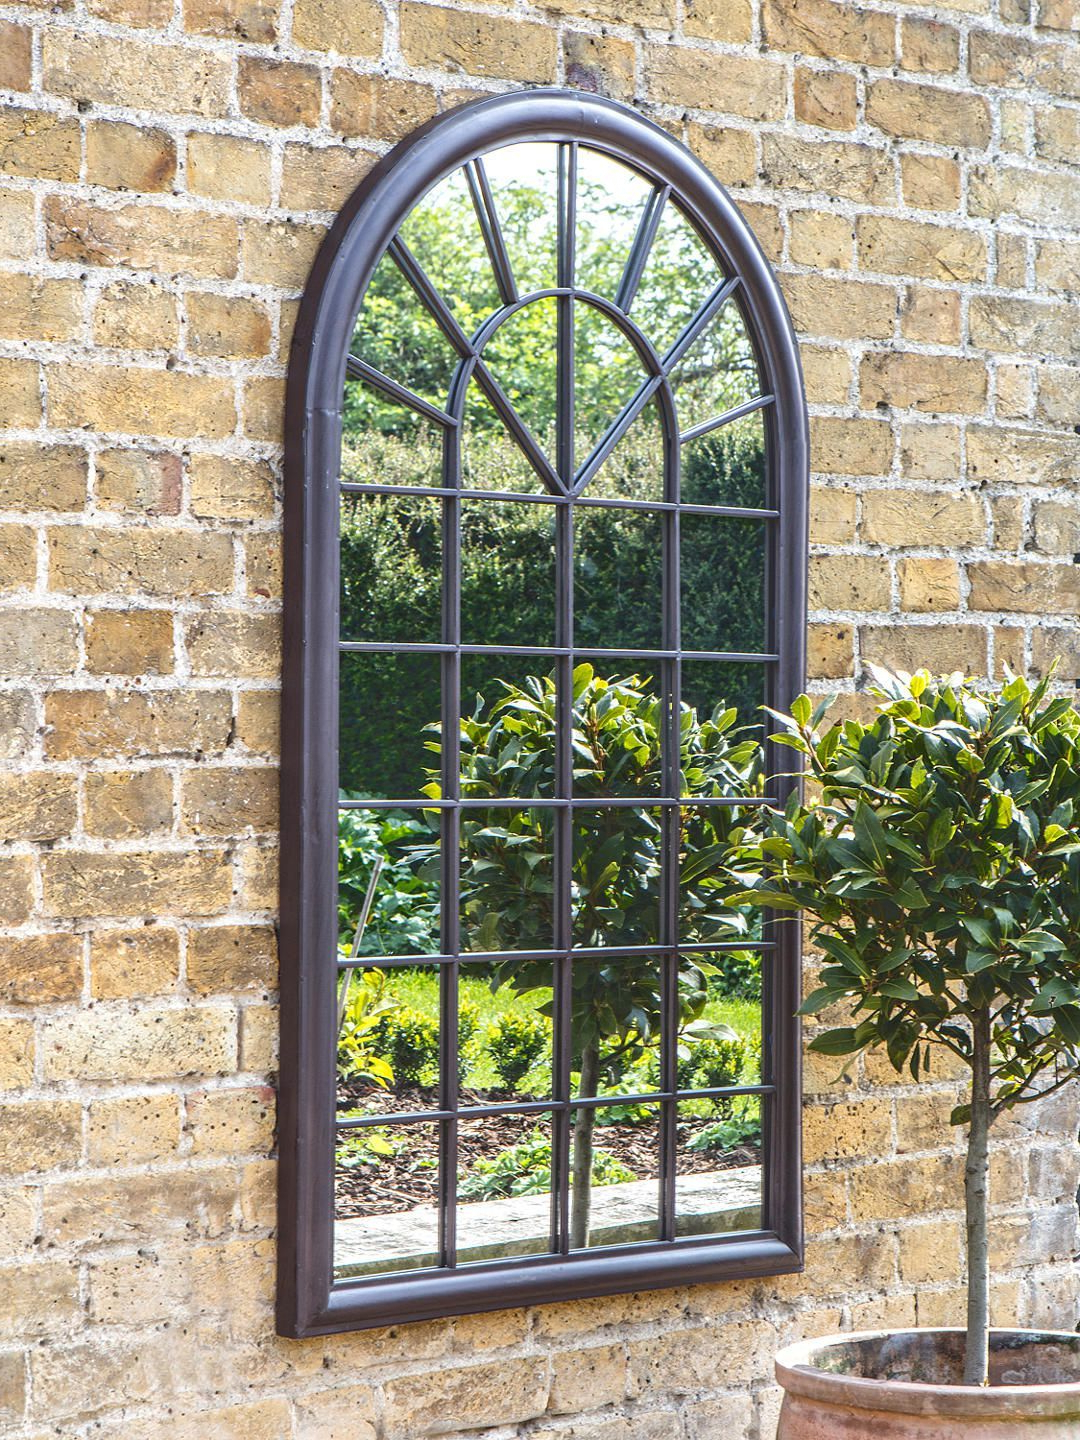 Well Liked Garden Wall Mirrors Within Fura Outdoor Garden Wall Window Style Arched Mirror, 131 X 75cm, Antique Bronze (View 2 of 20)